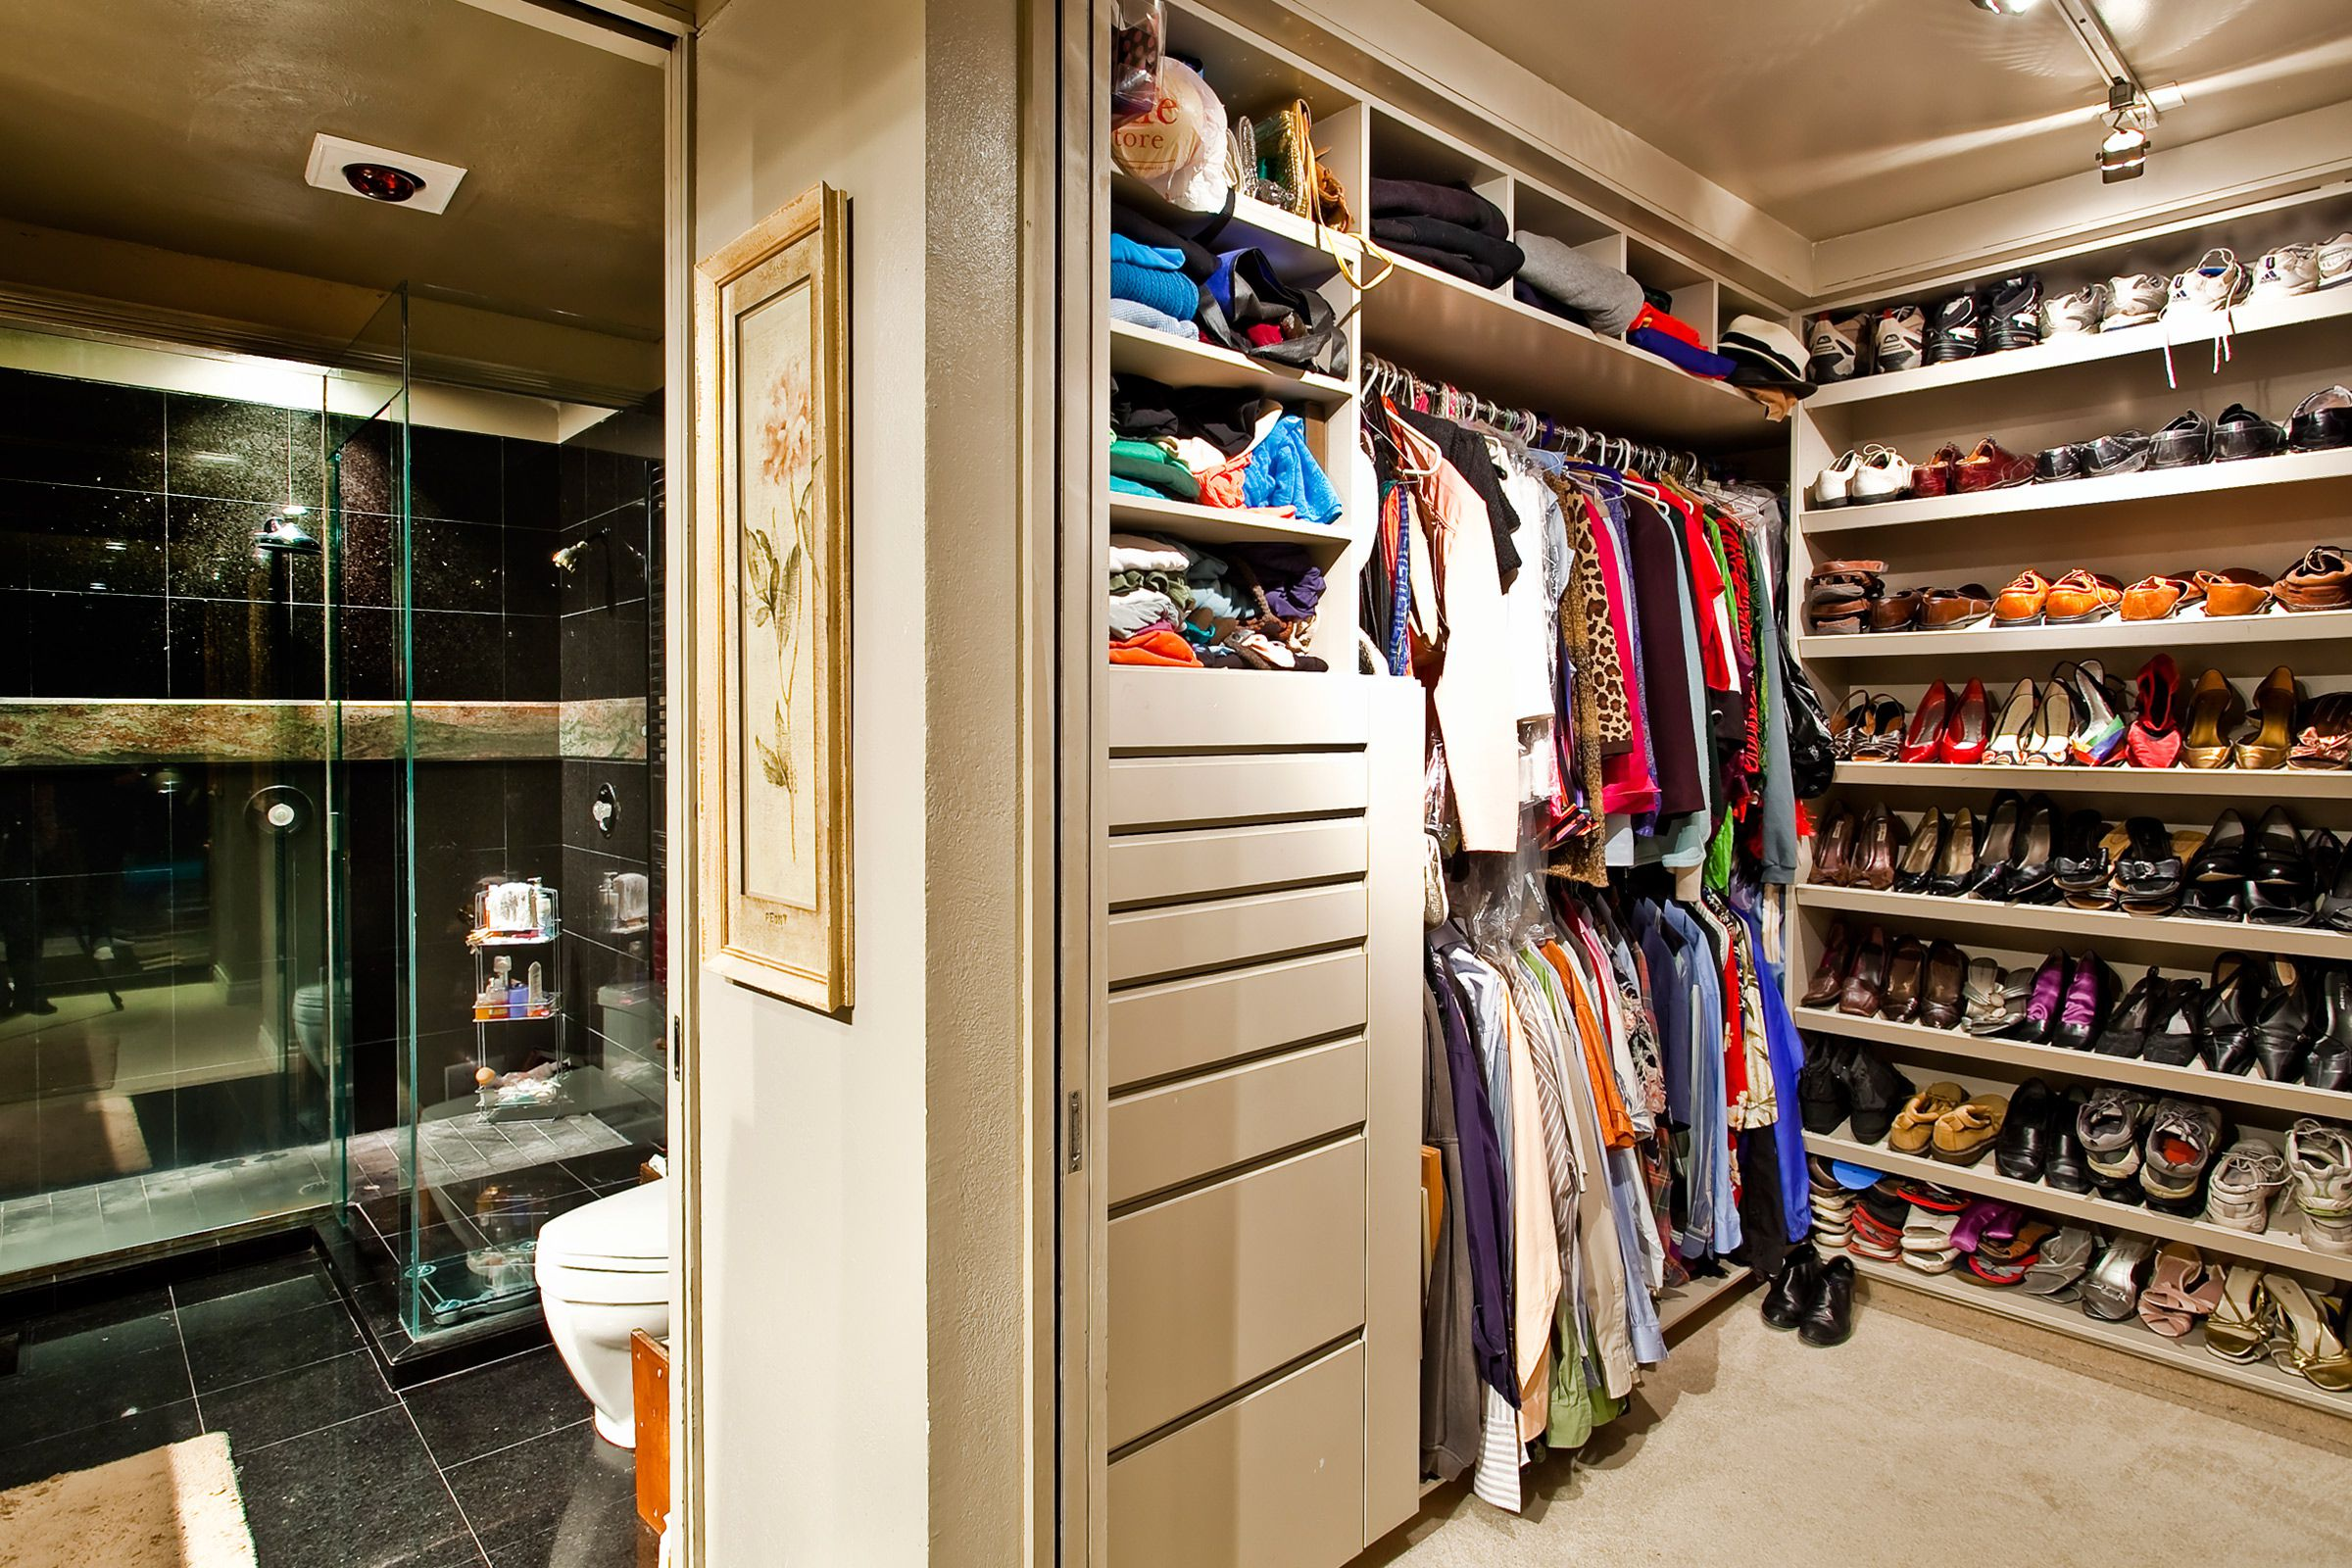 appealing shoes racks also hanging clothes to decorate small closet design ideas - Closet Bathroom Design